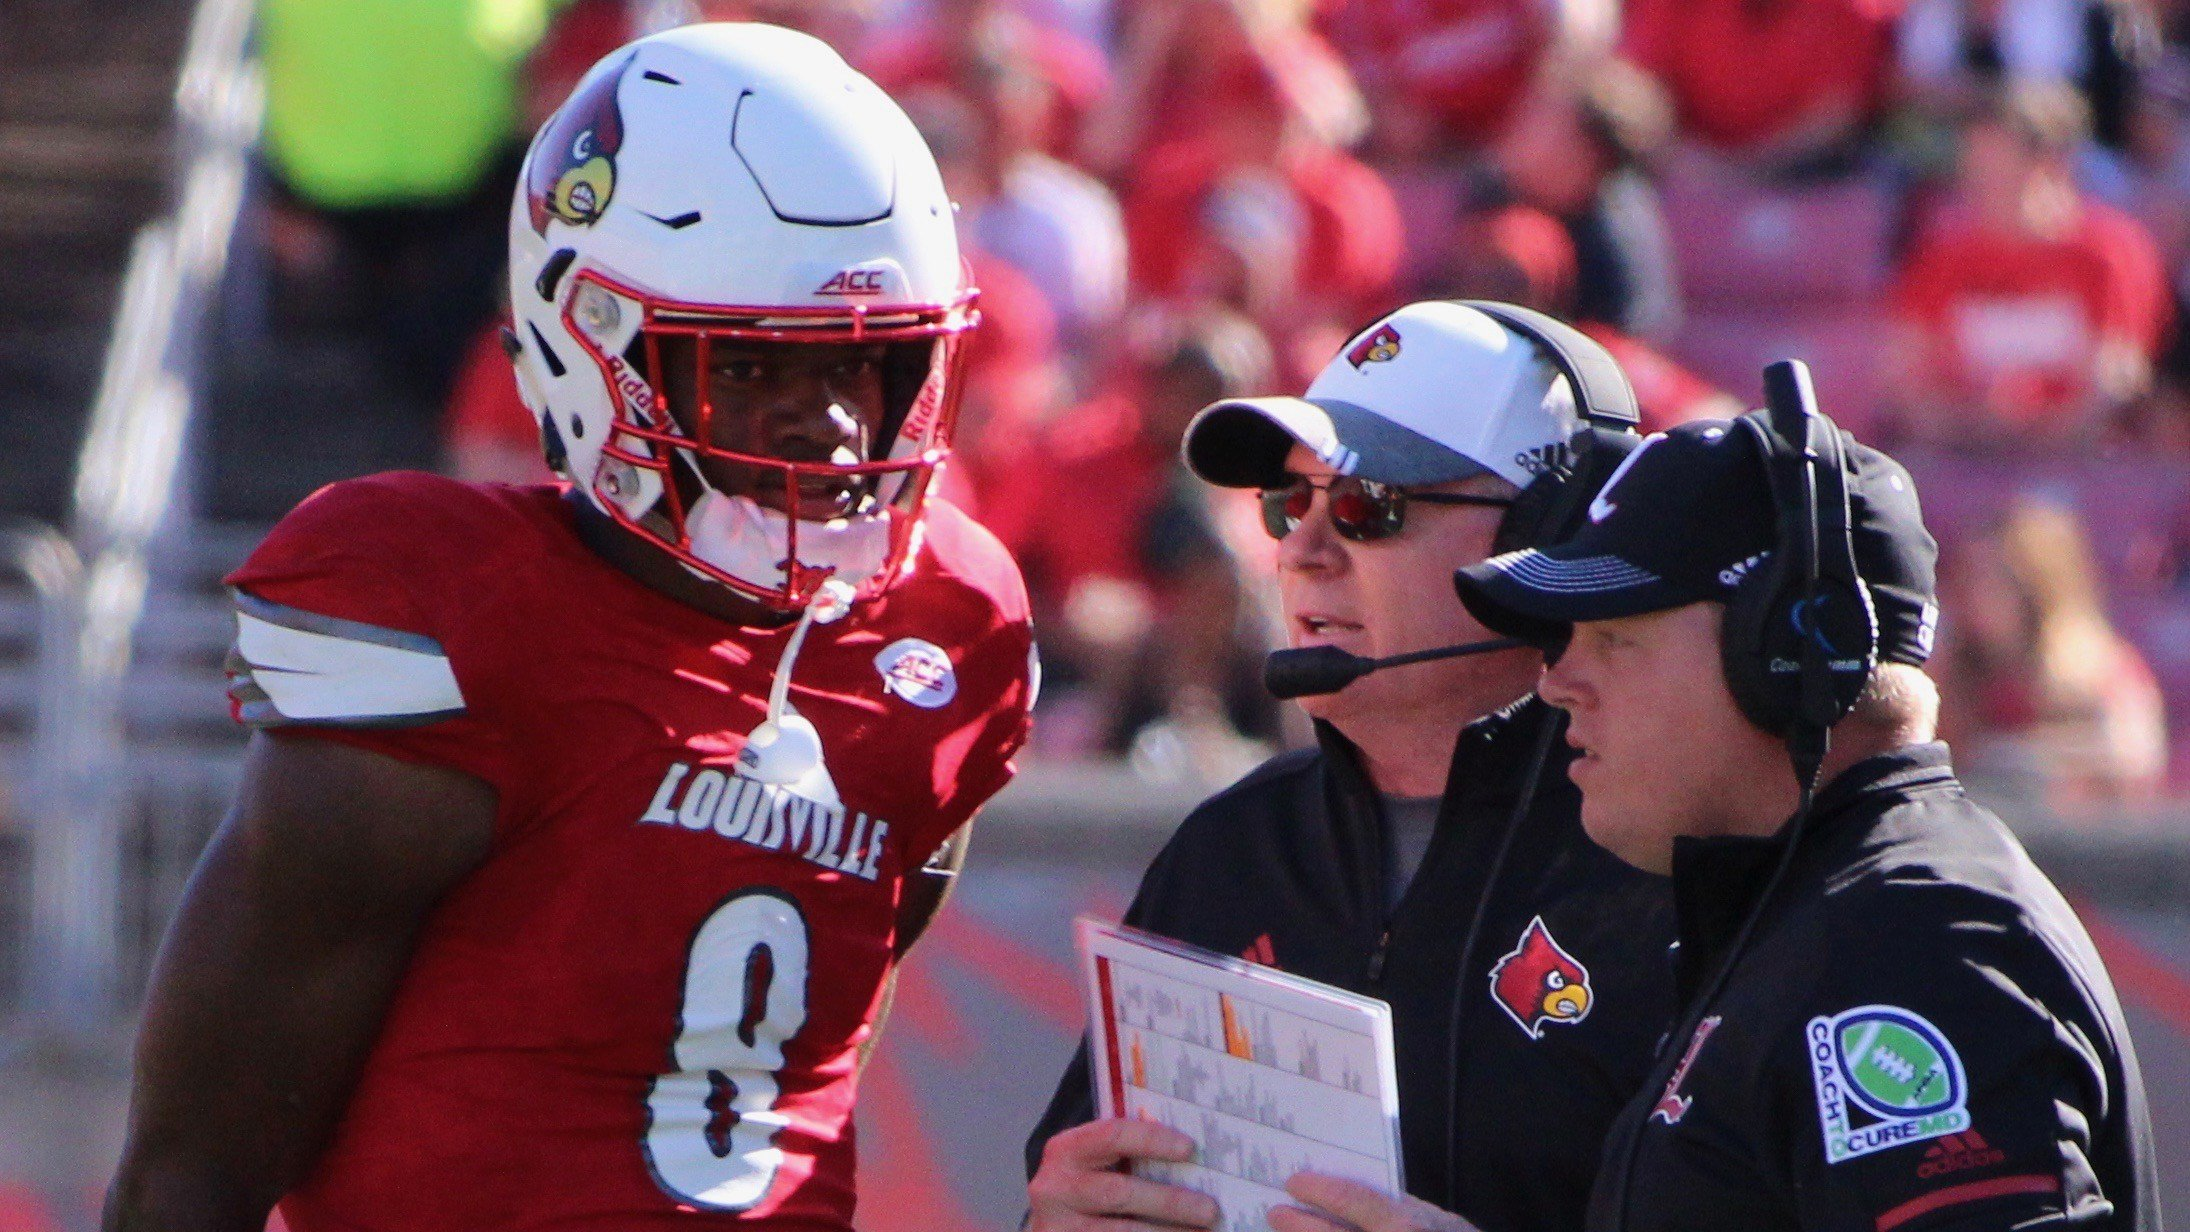 Louisville will face Mississippi State in the TaxSlayer Bowl. (WDRB photo by Eric Crawford)